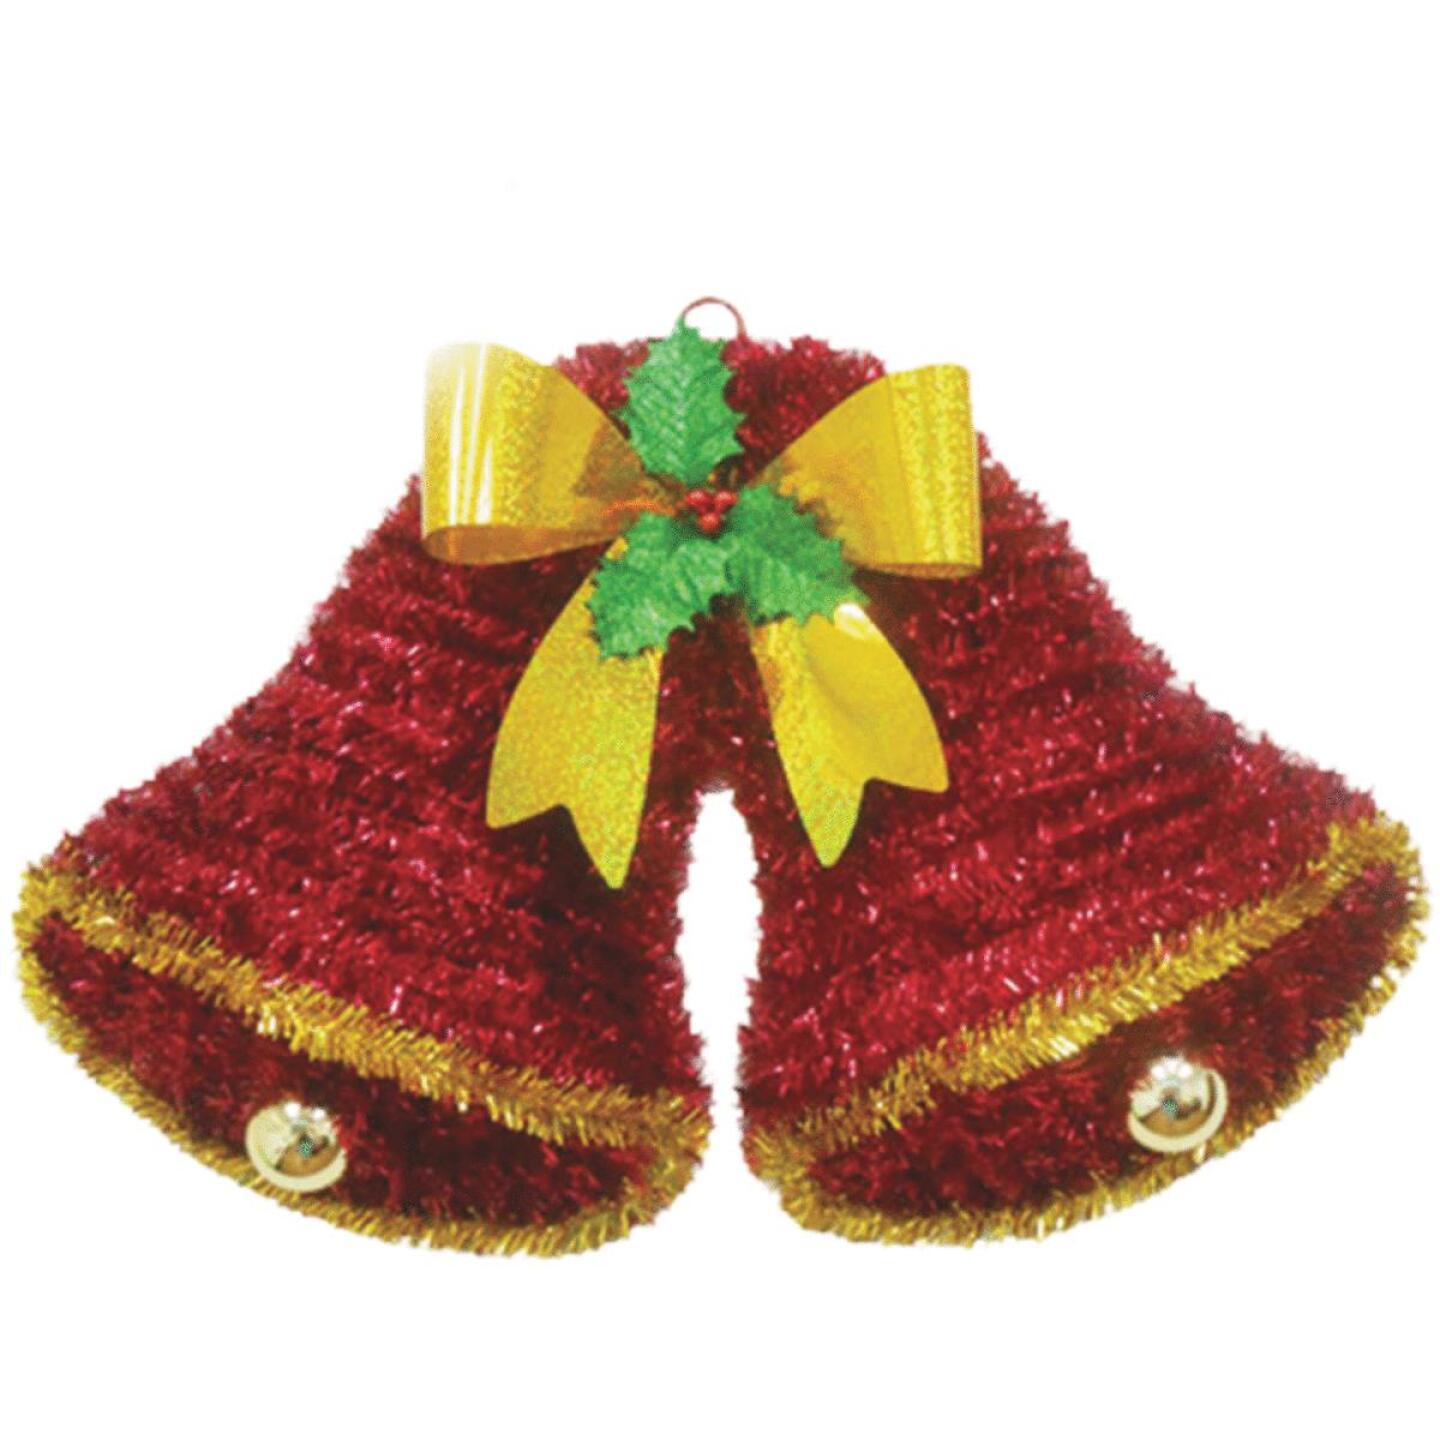 Youngcraft 20 In. Tinsel Double Bell Holiday Decoration Image 1